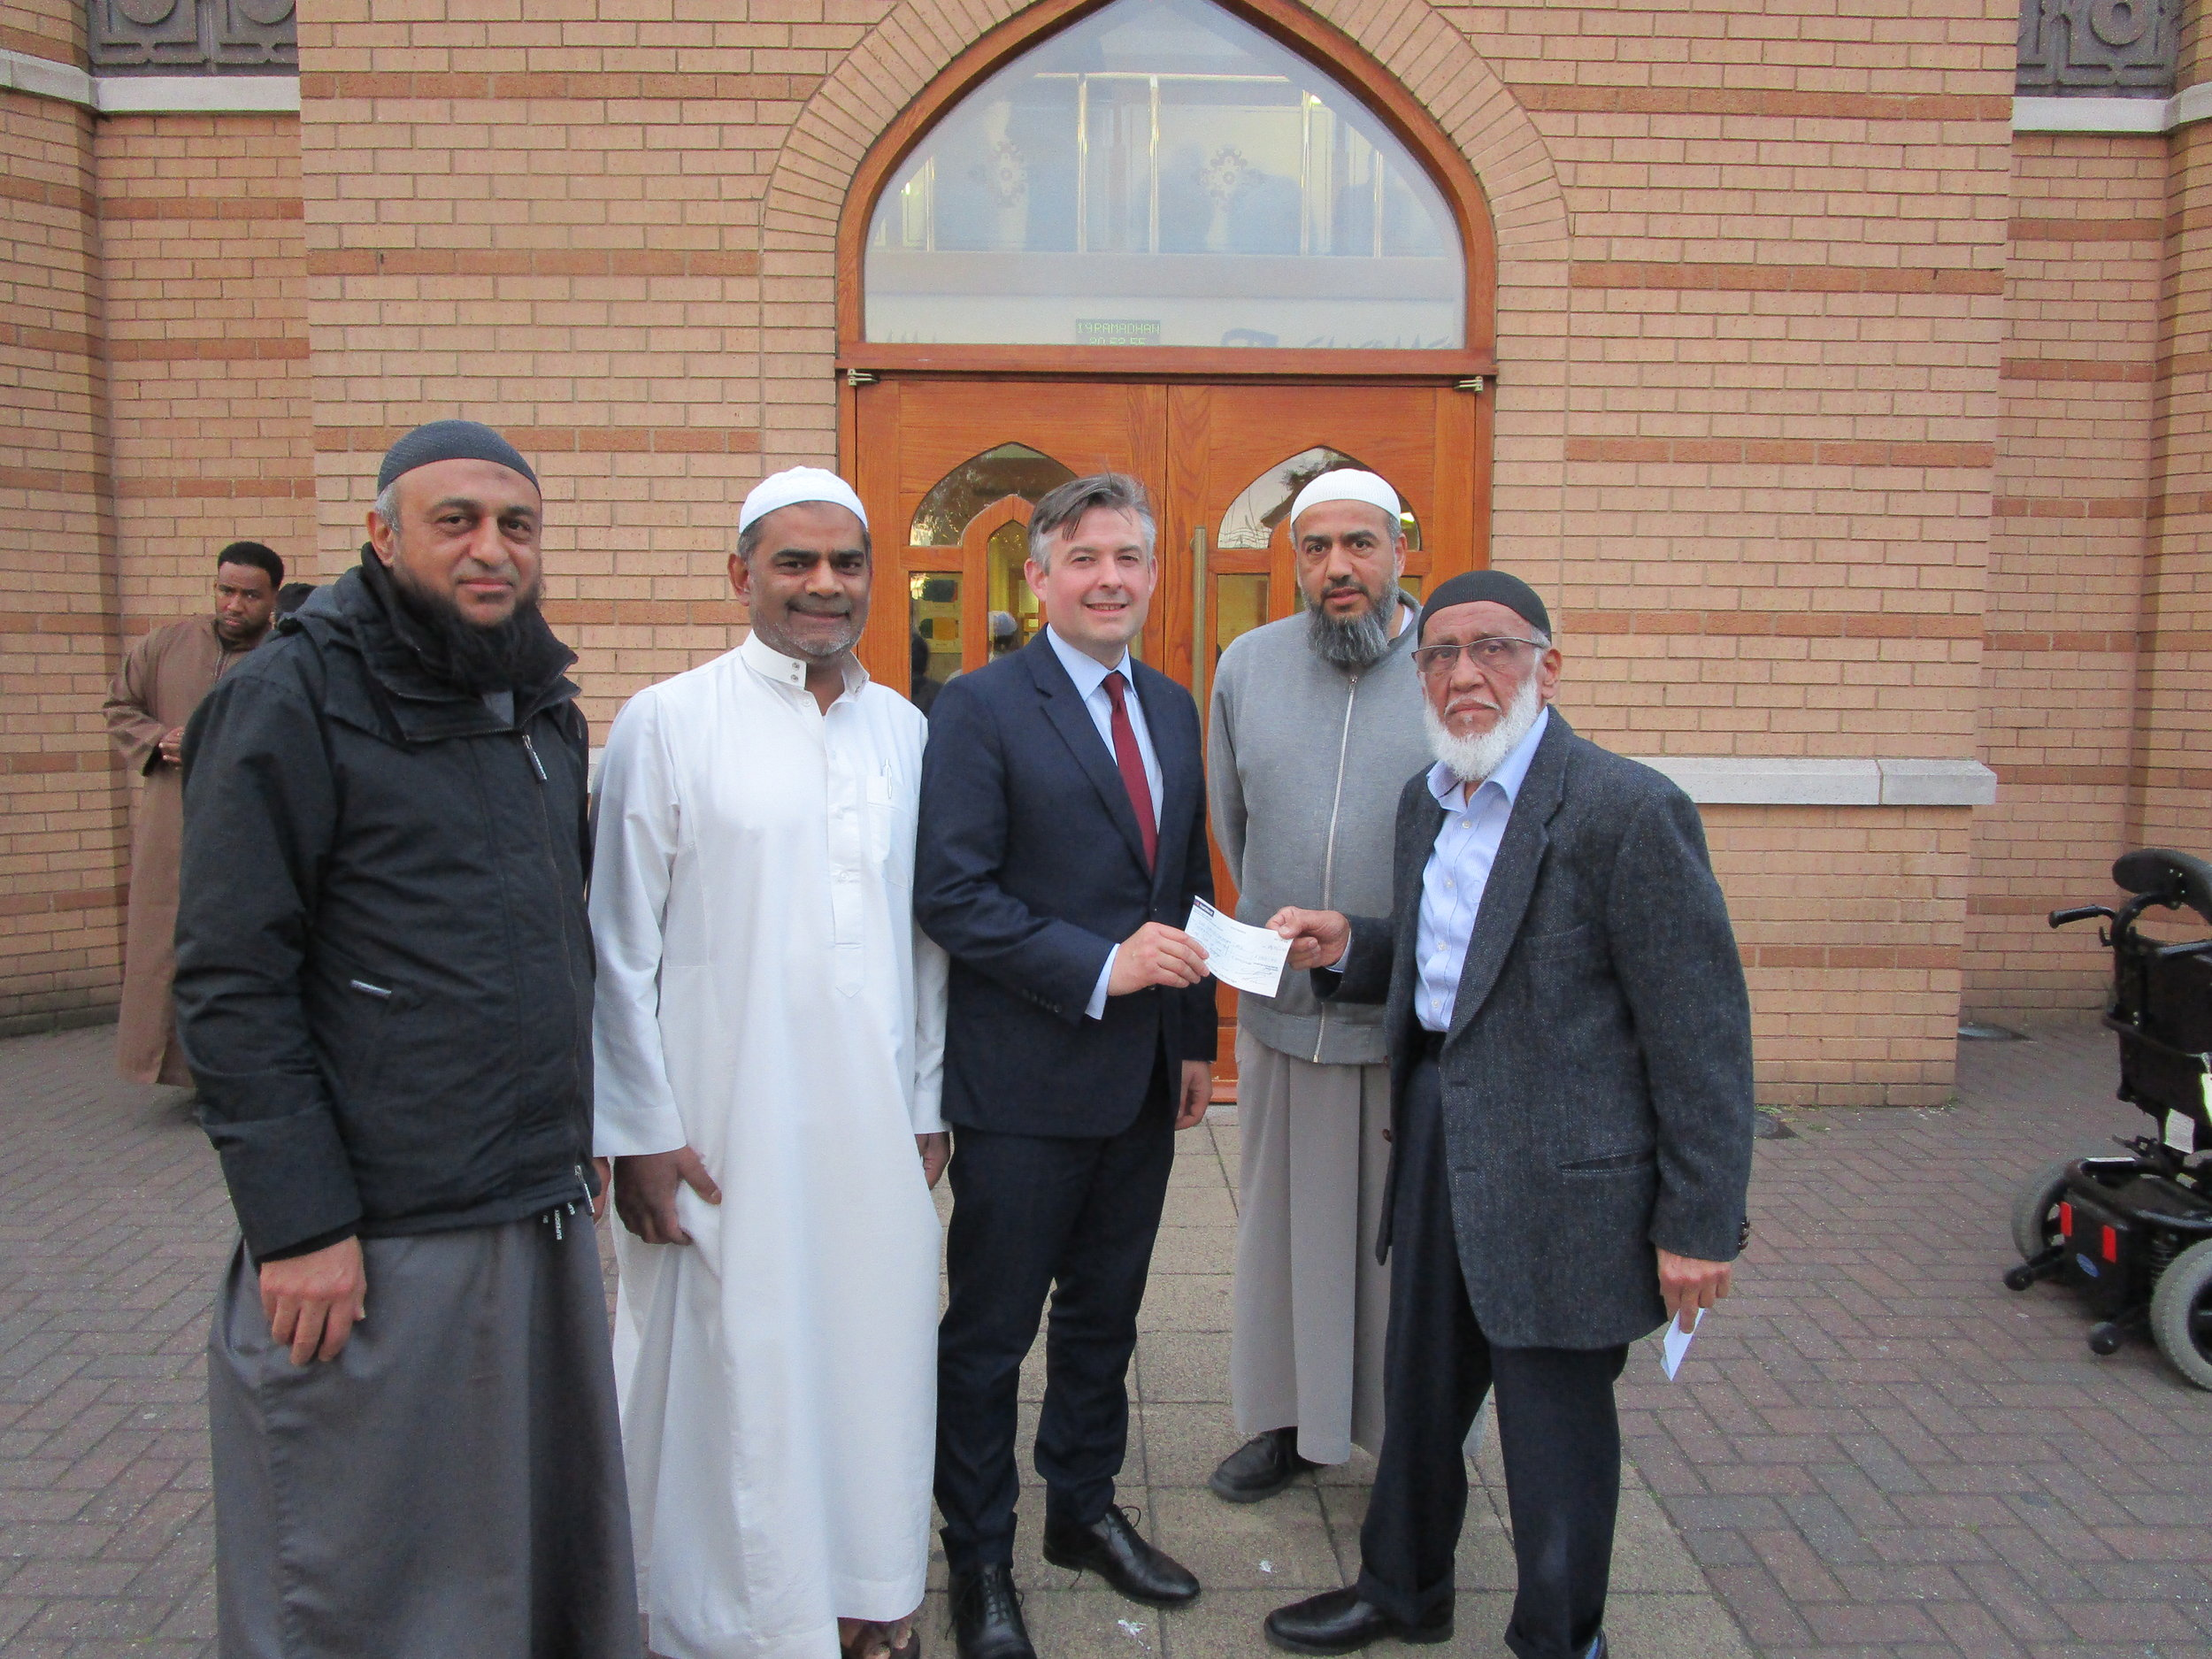 Jon visited Masjid Umar on Evington Drive which donated £1000 towards a replacement stair lift at the Leicestershire MS Therapy Centre - Friday May 24 2019